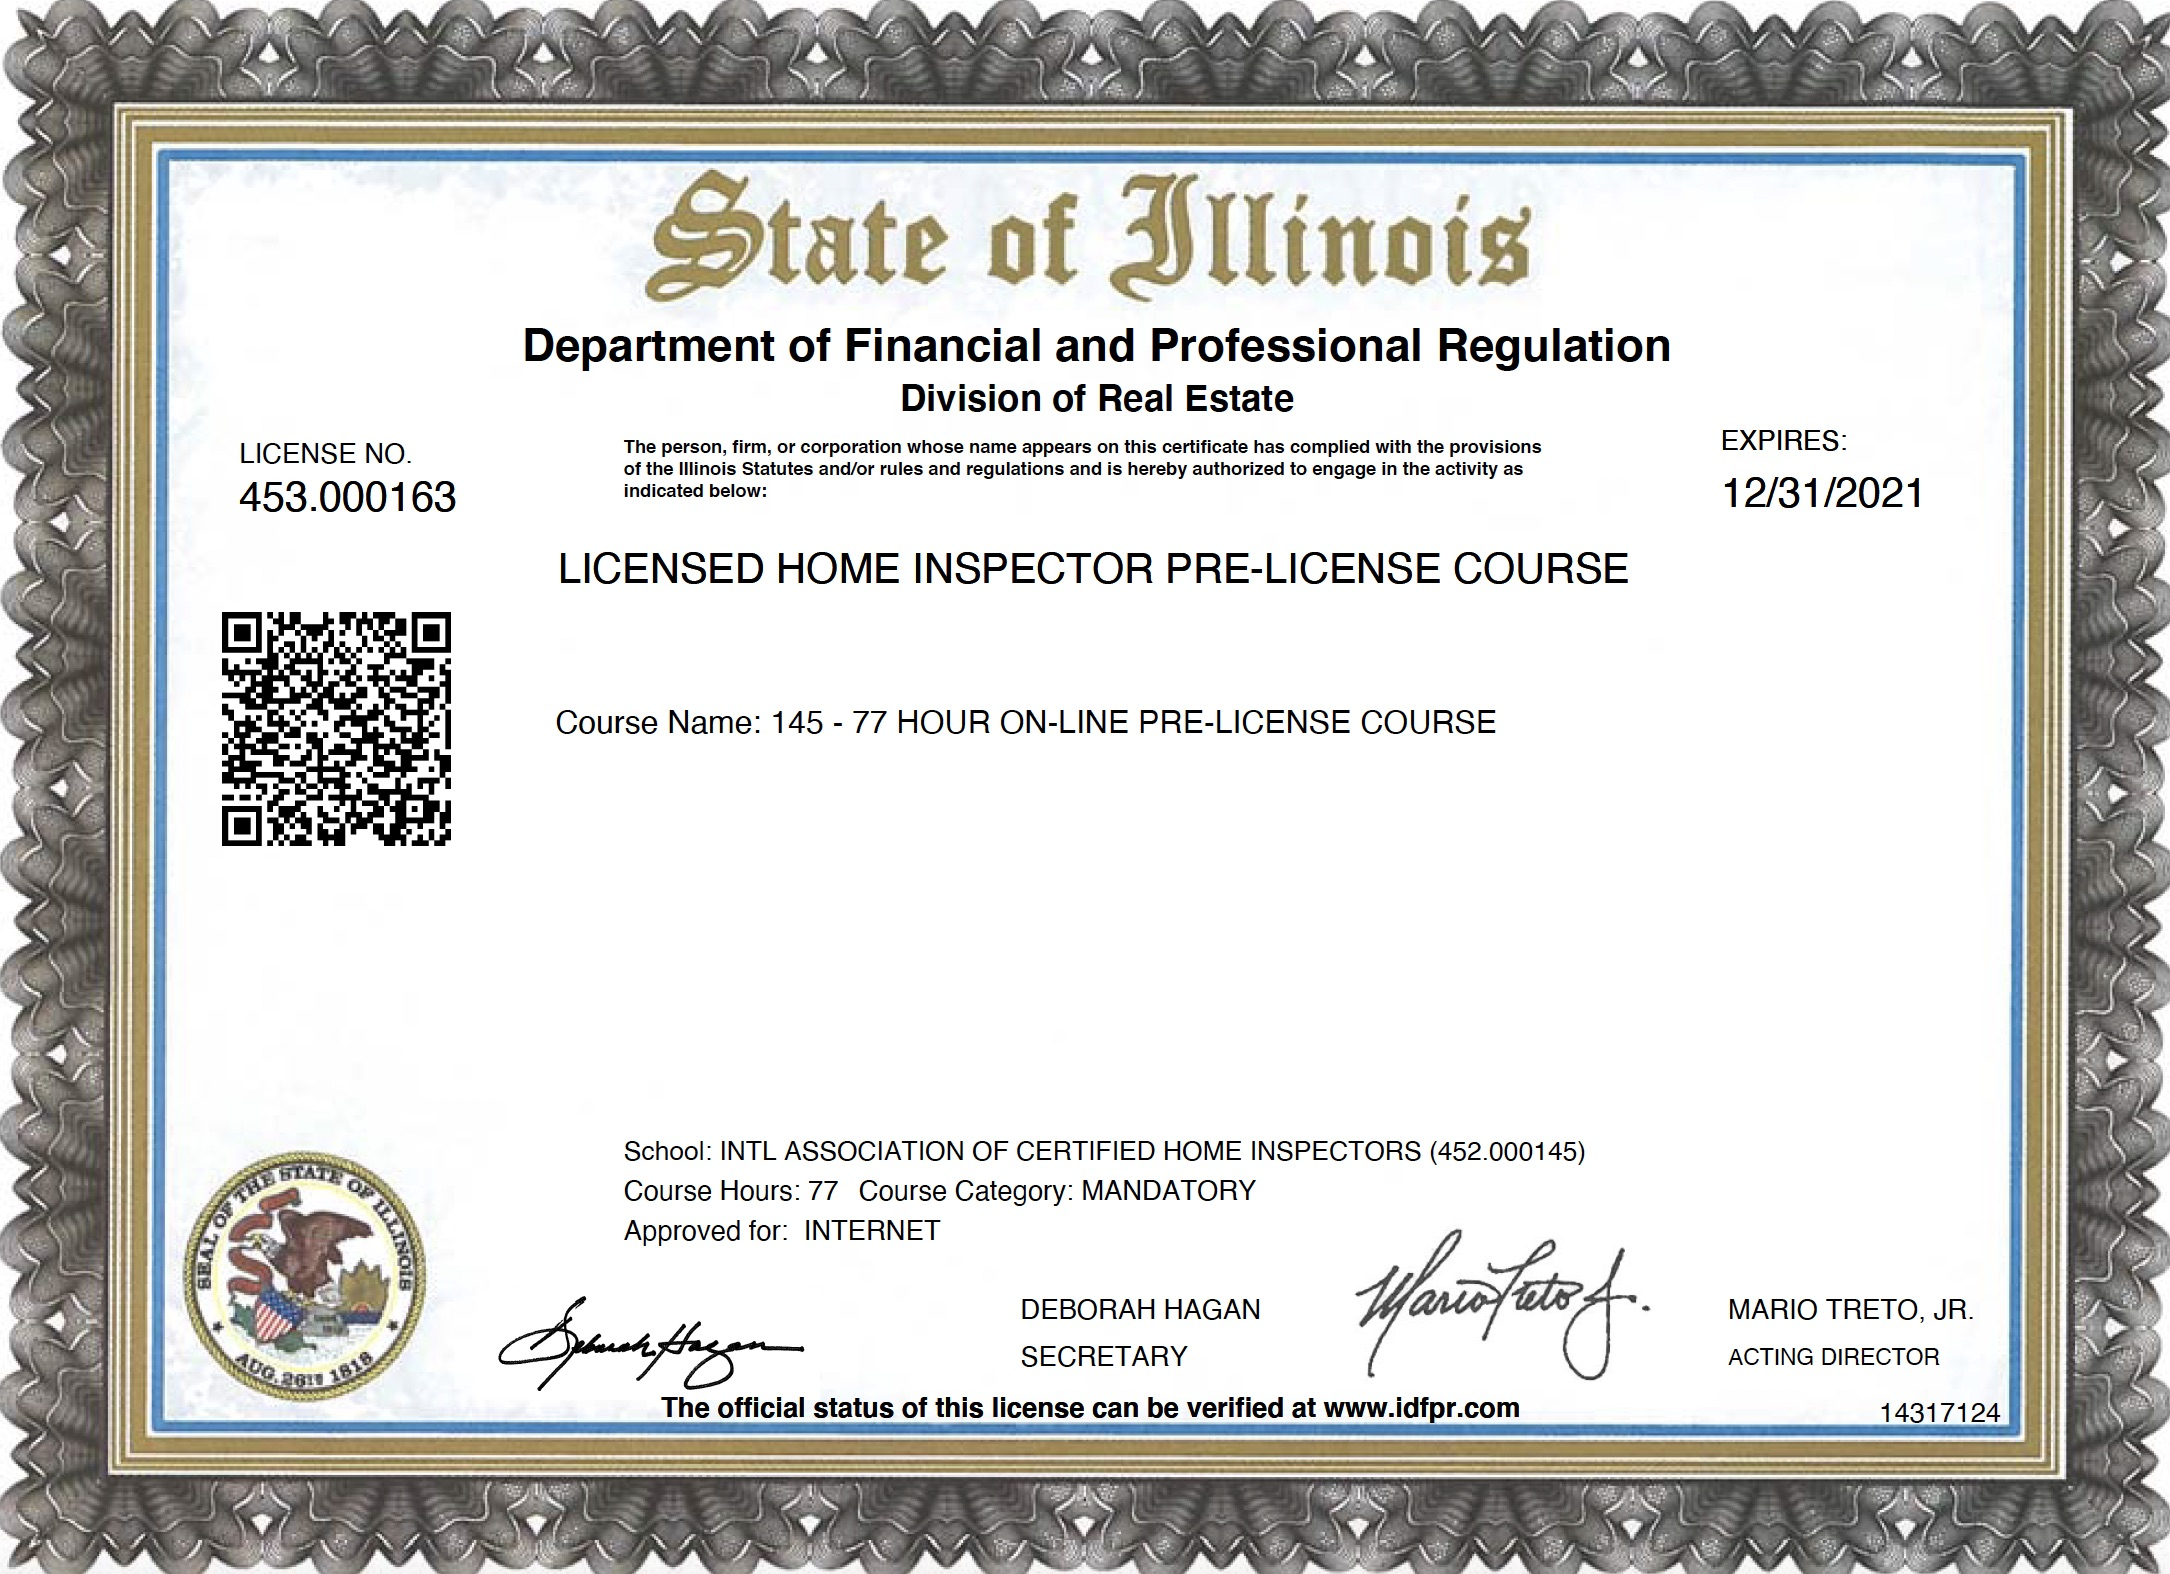 Home Inspector Licensing In Illinois Internachi